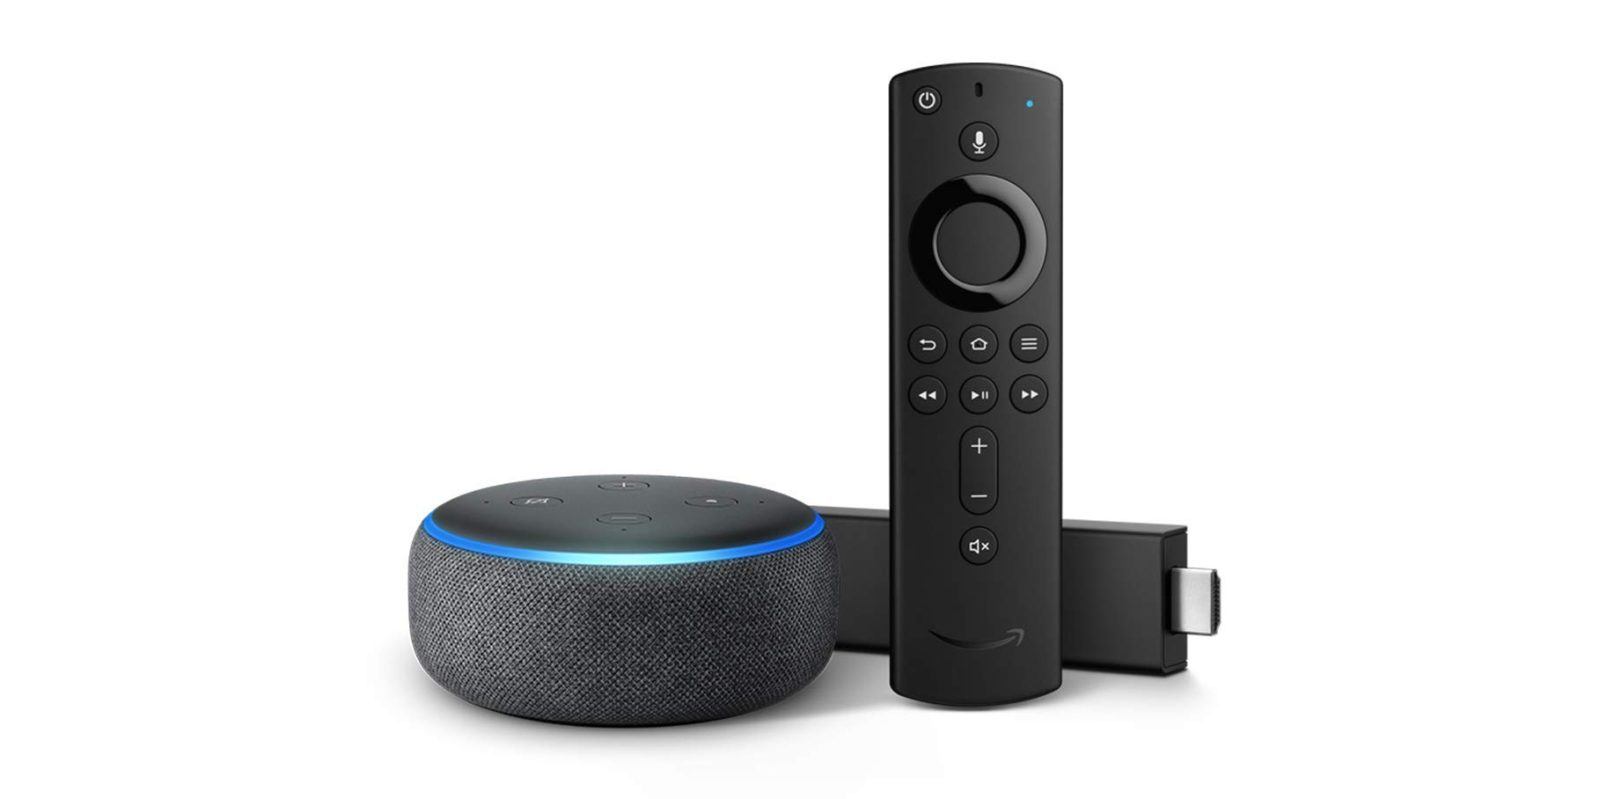 Bundle Amazon's Fire TV Stick 4K and Echo Dot for $47 shipped ($100 value)